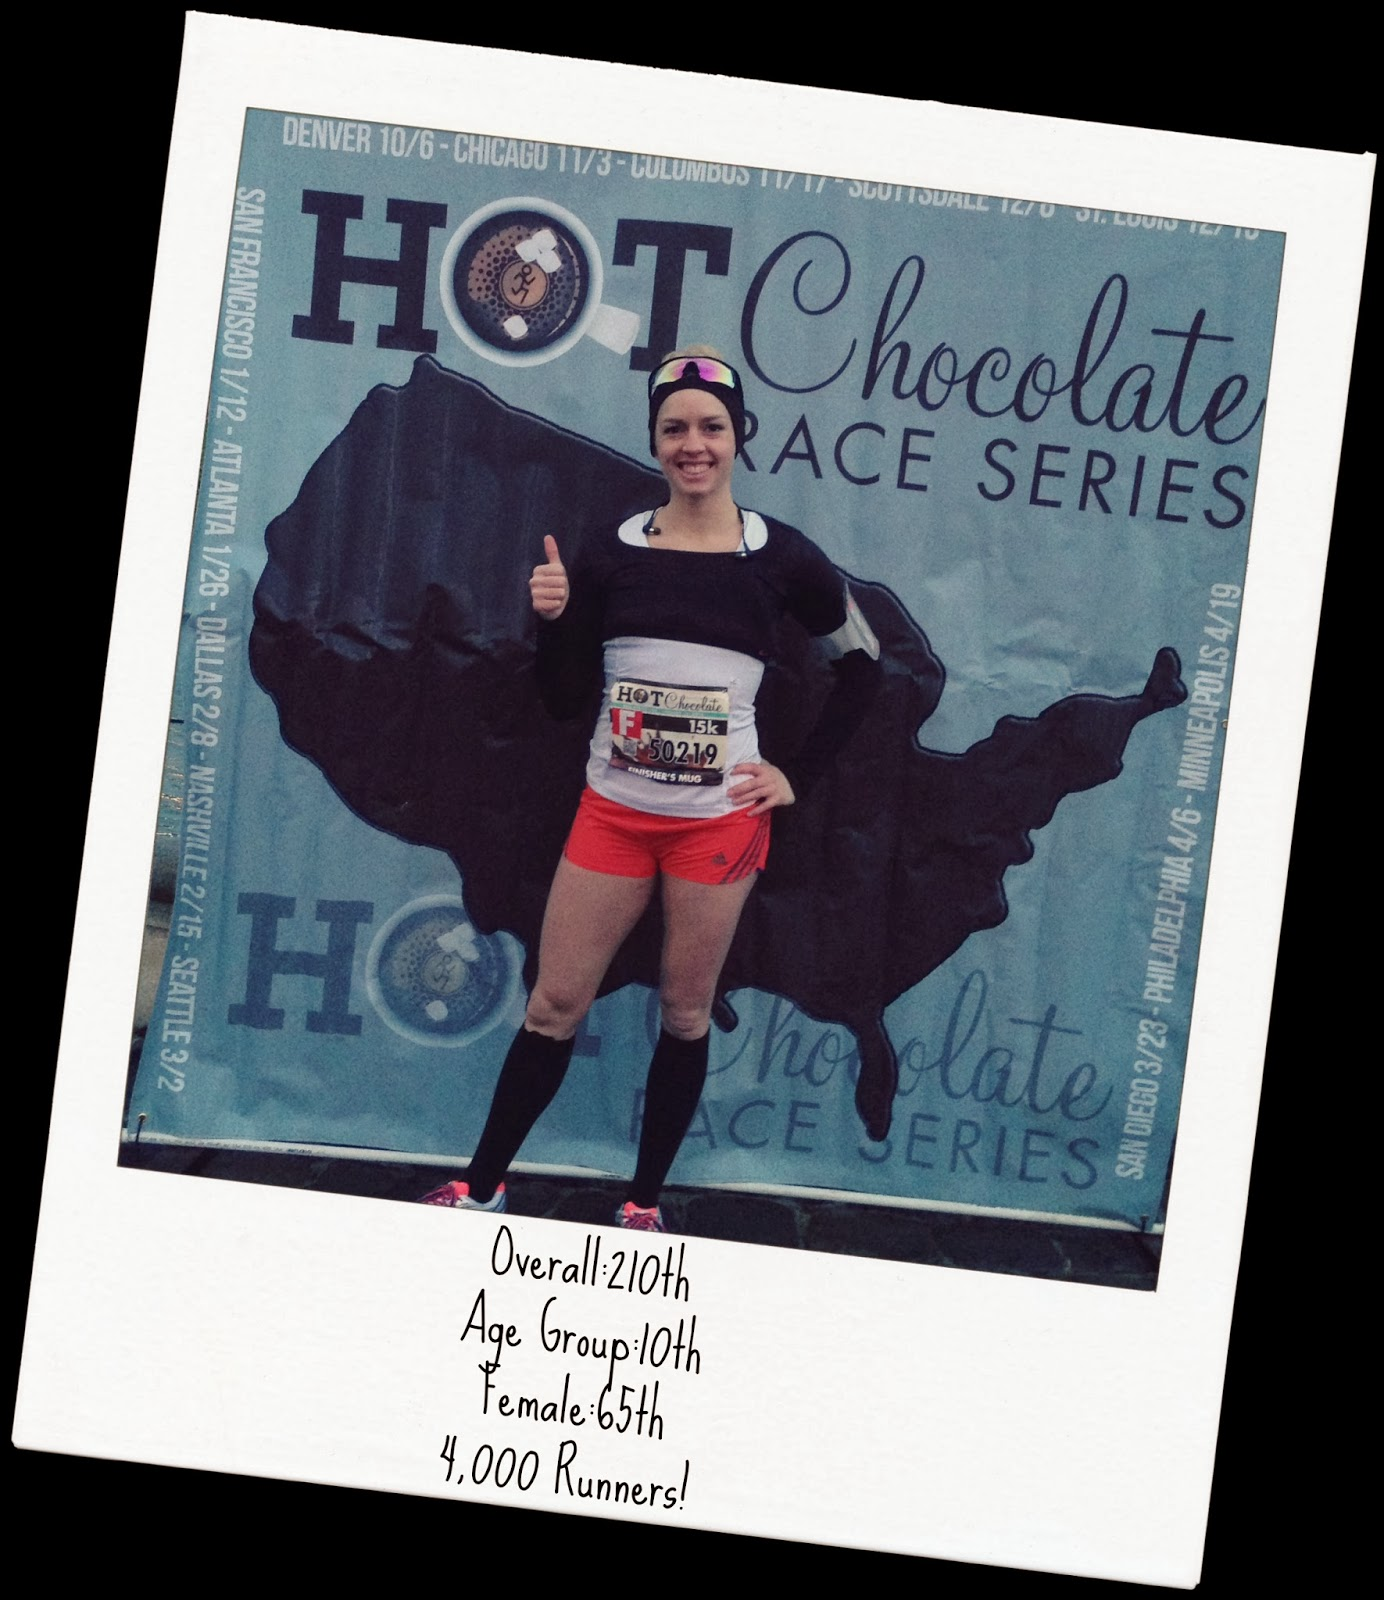 Brrr...The Hot Chocolate Run-My first run of 2014 - Devious fIT Girl